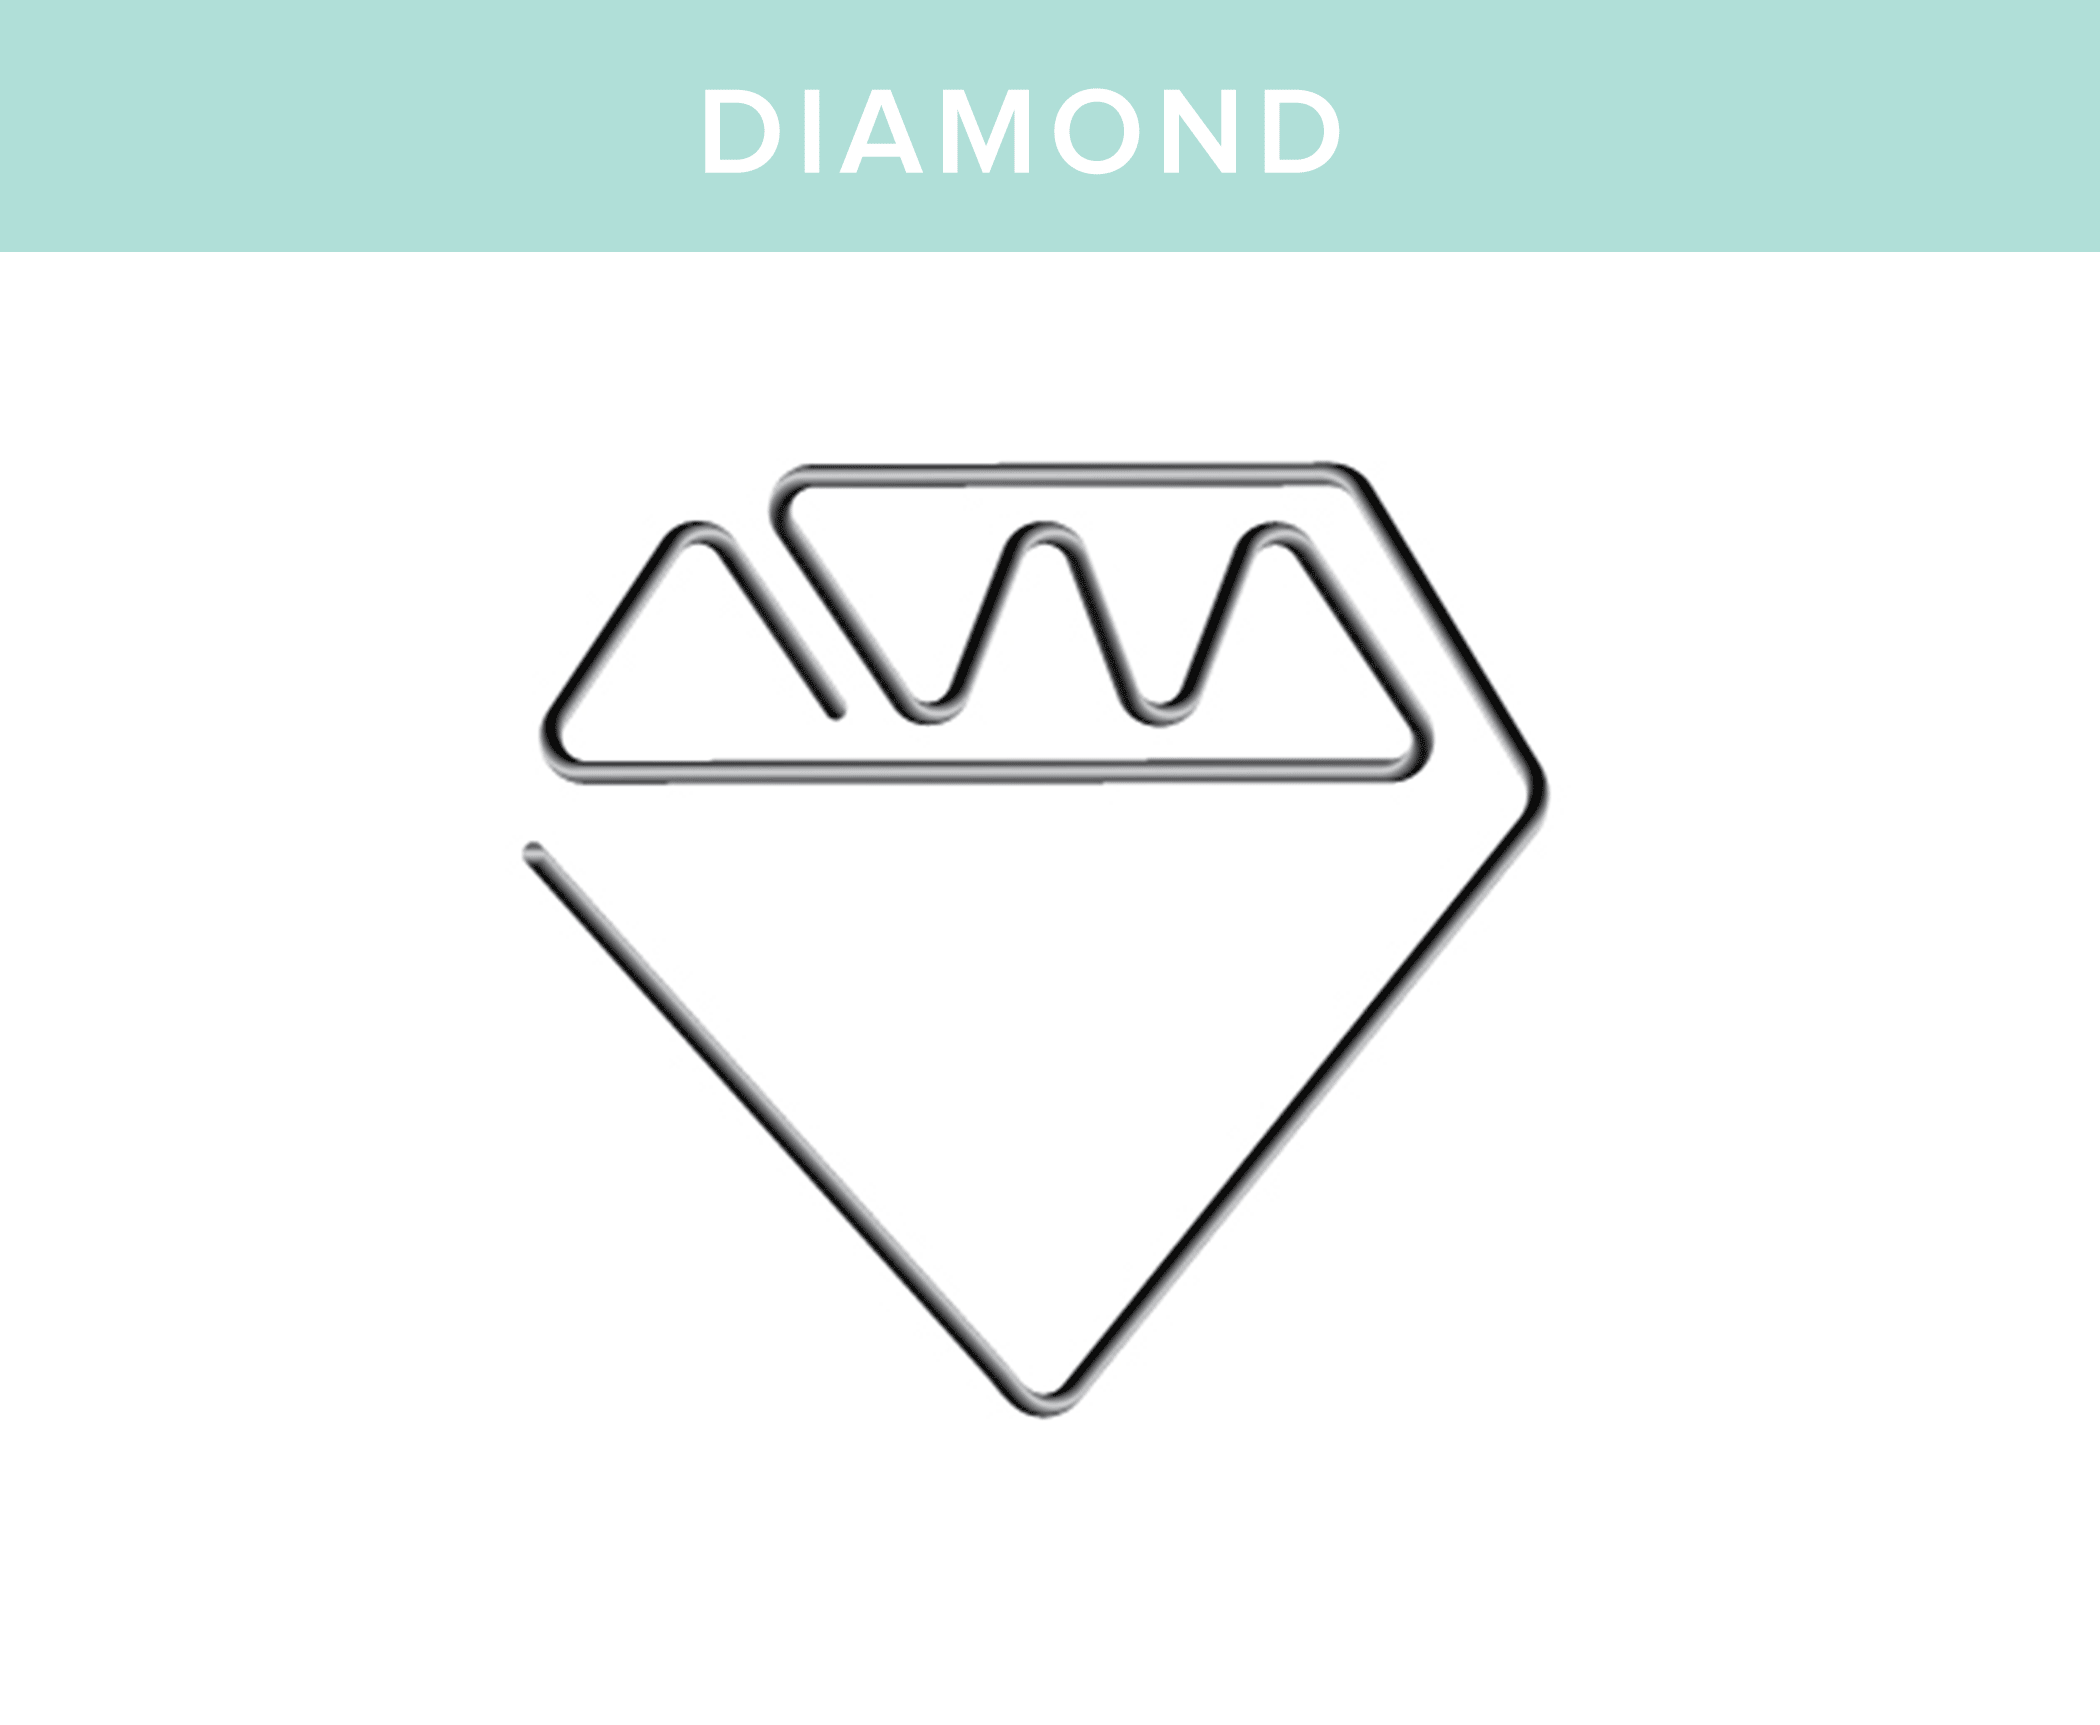 Happy-Jig-Website-TemplateDIAMOND